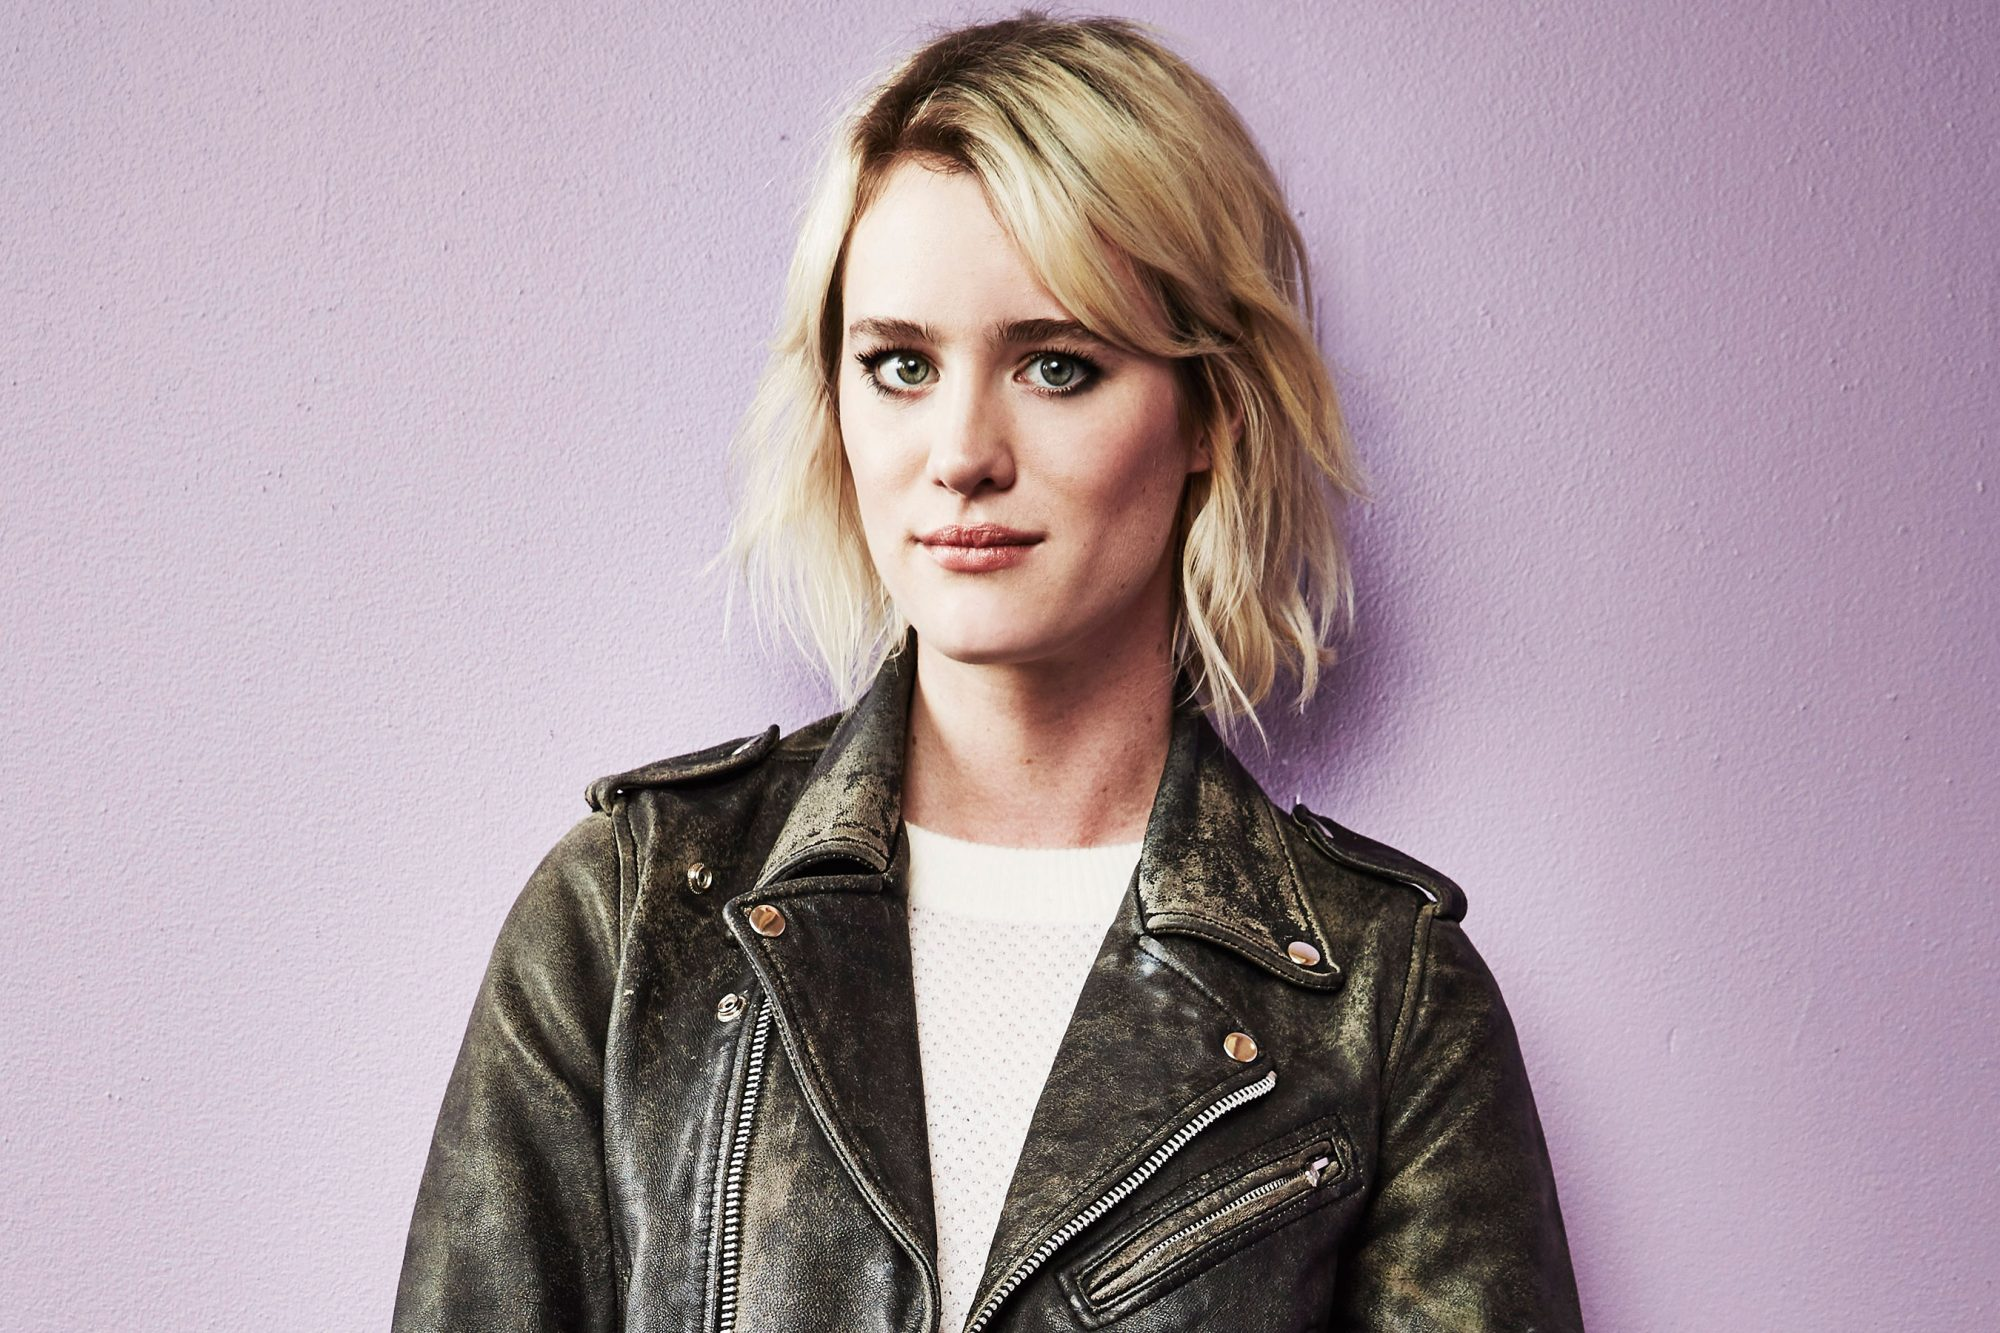 2015 Winter TCA - Portraits